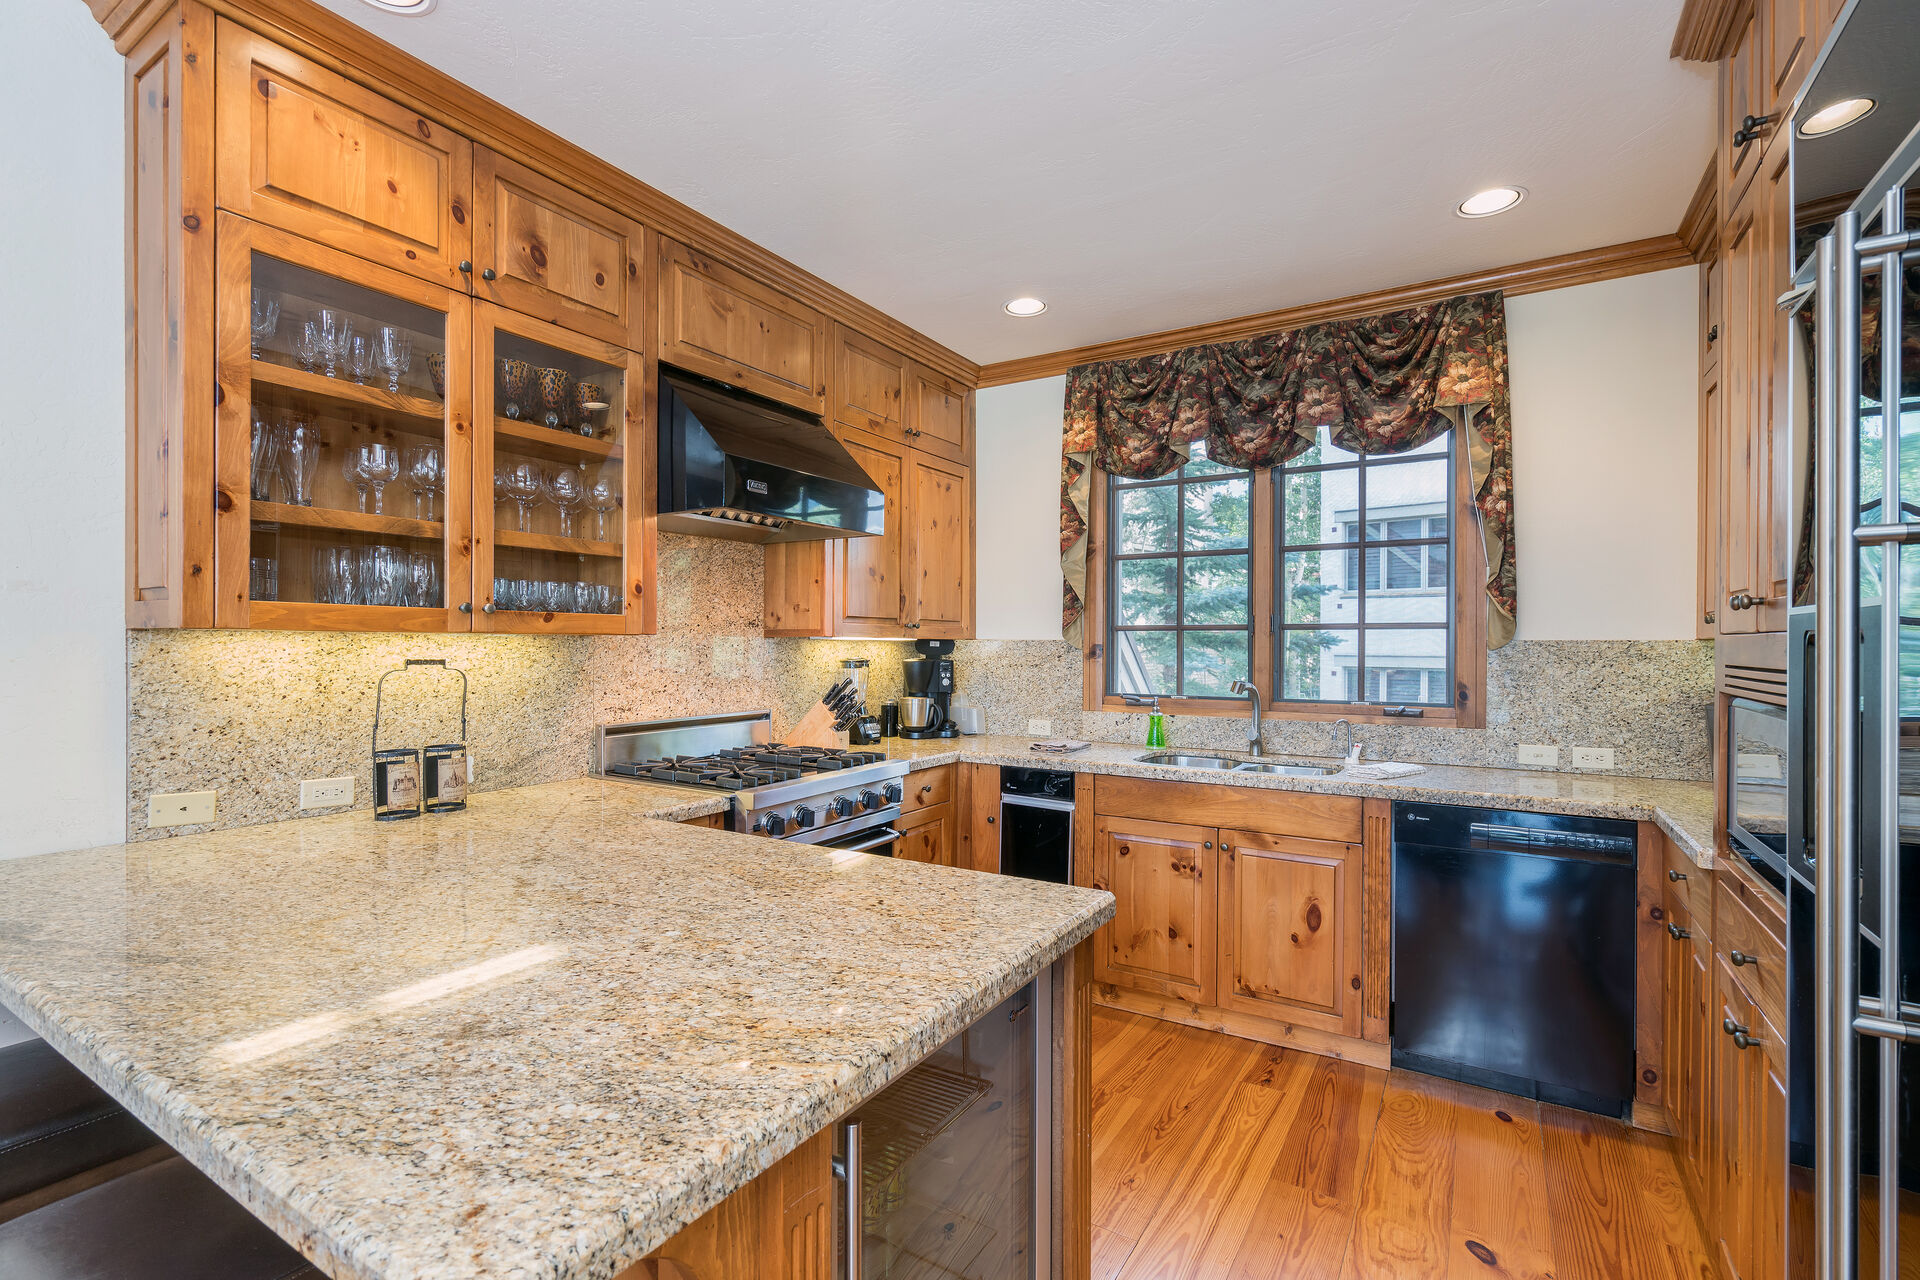 Kitchen area with wraparound counters and an oven.